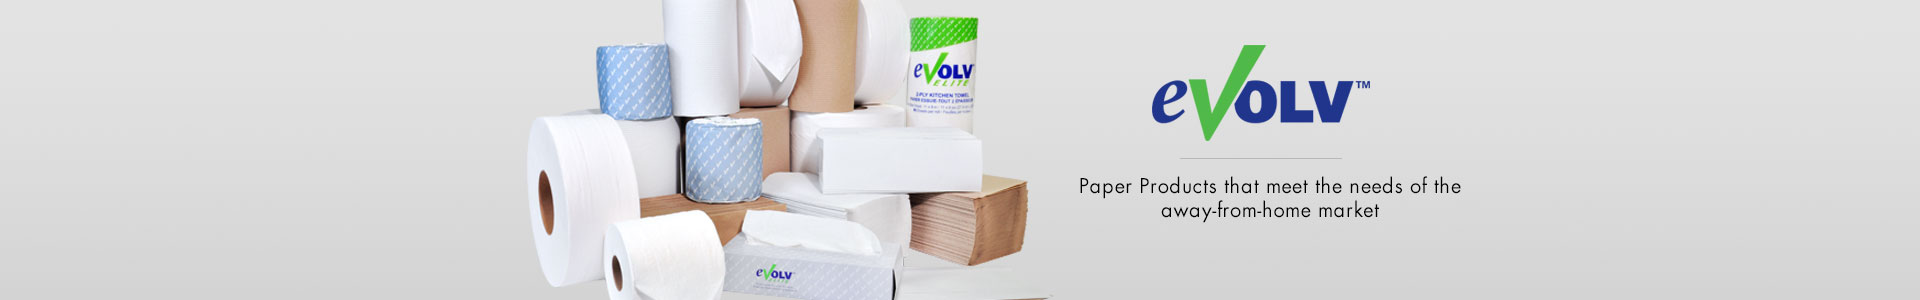 Evolv Paper Products - Paper Products that meet the needs of the away-from-home market